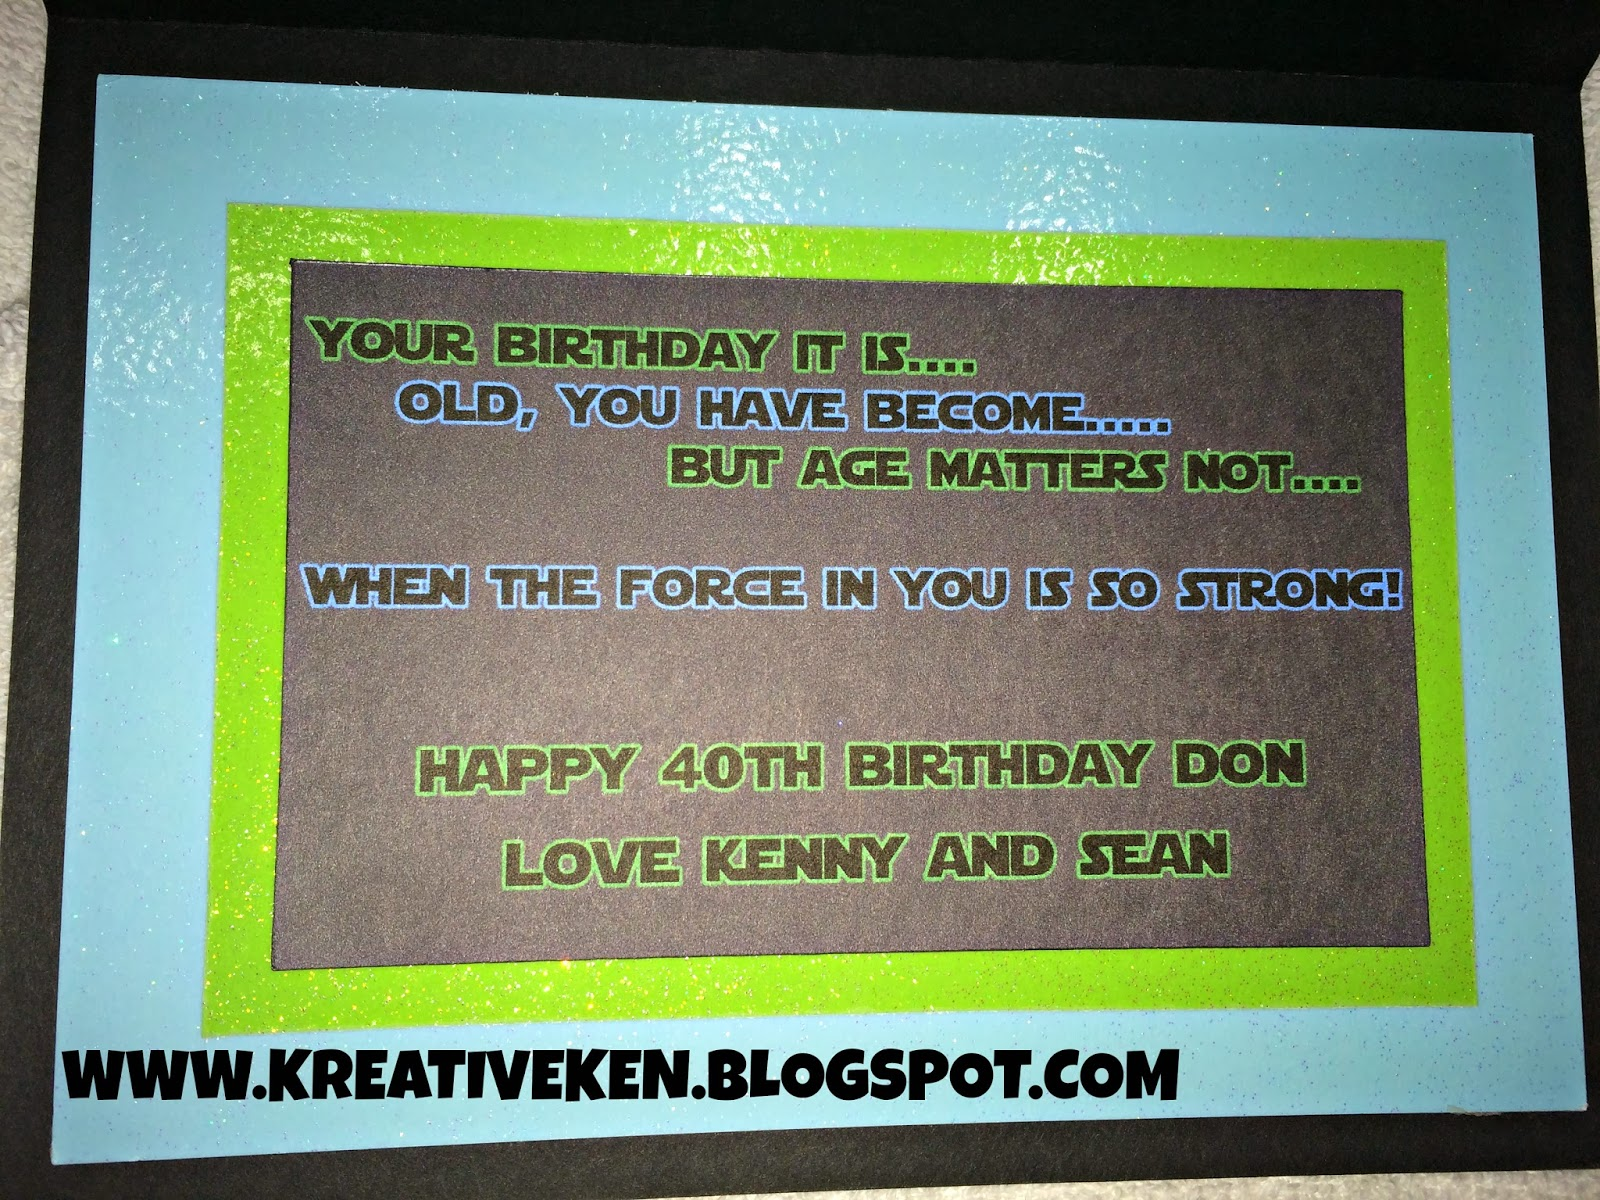 Star wars birthday card kens kreations i used the star wars font found at dafont and came up wording as in the style of yoda this was a print and cut as well bookmarktalkfo Choice Image